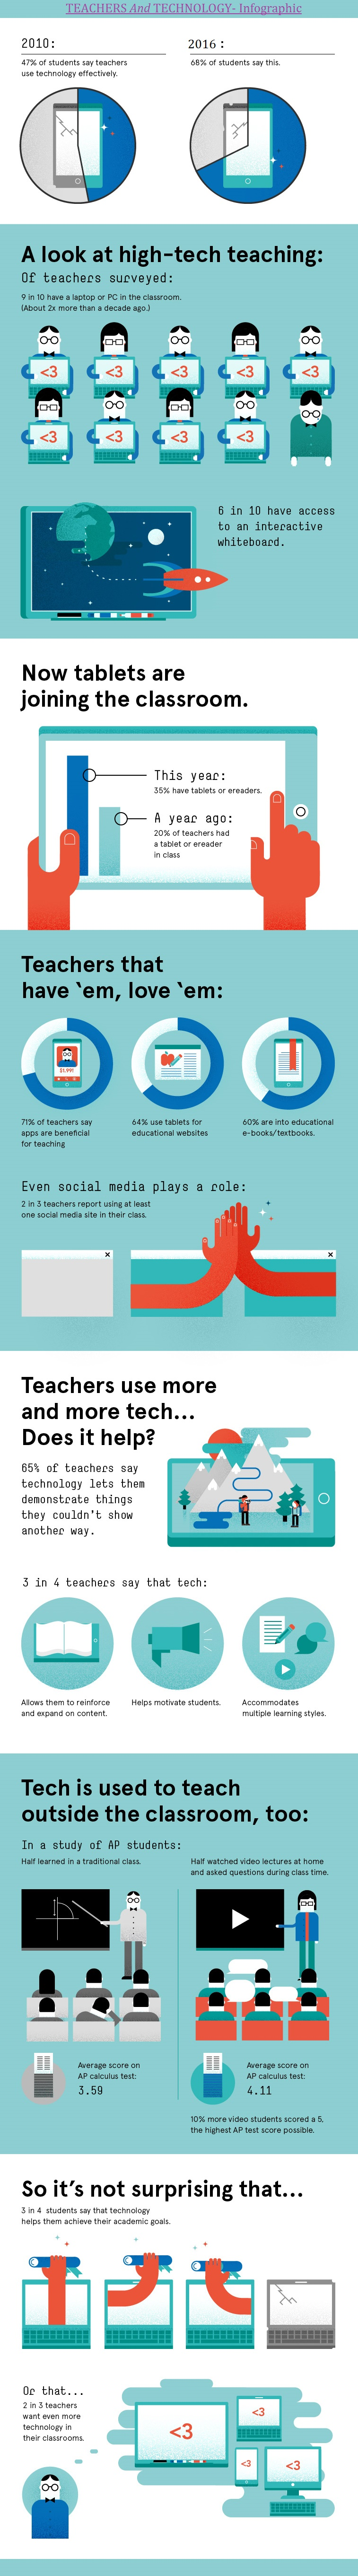 Teachers and technology infographic